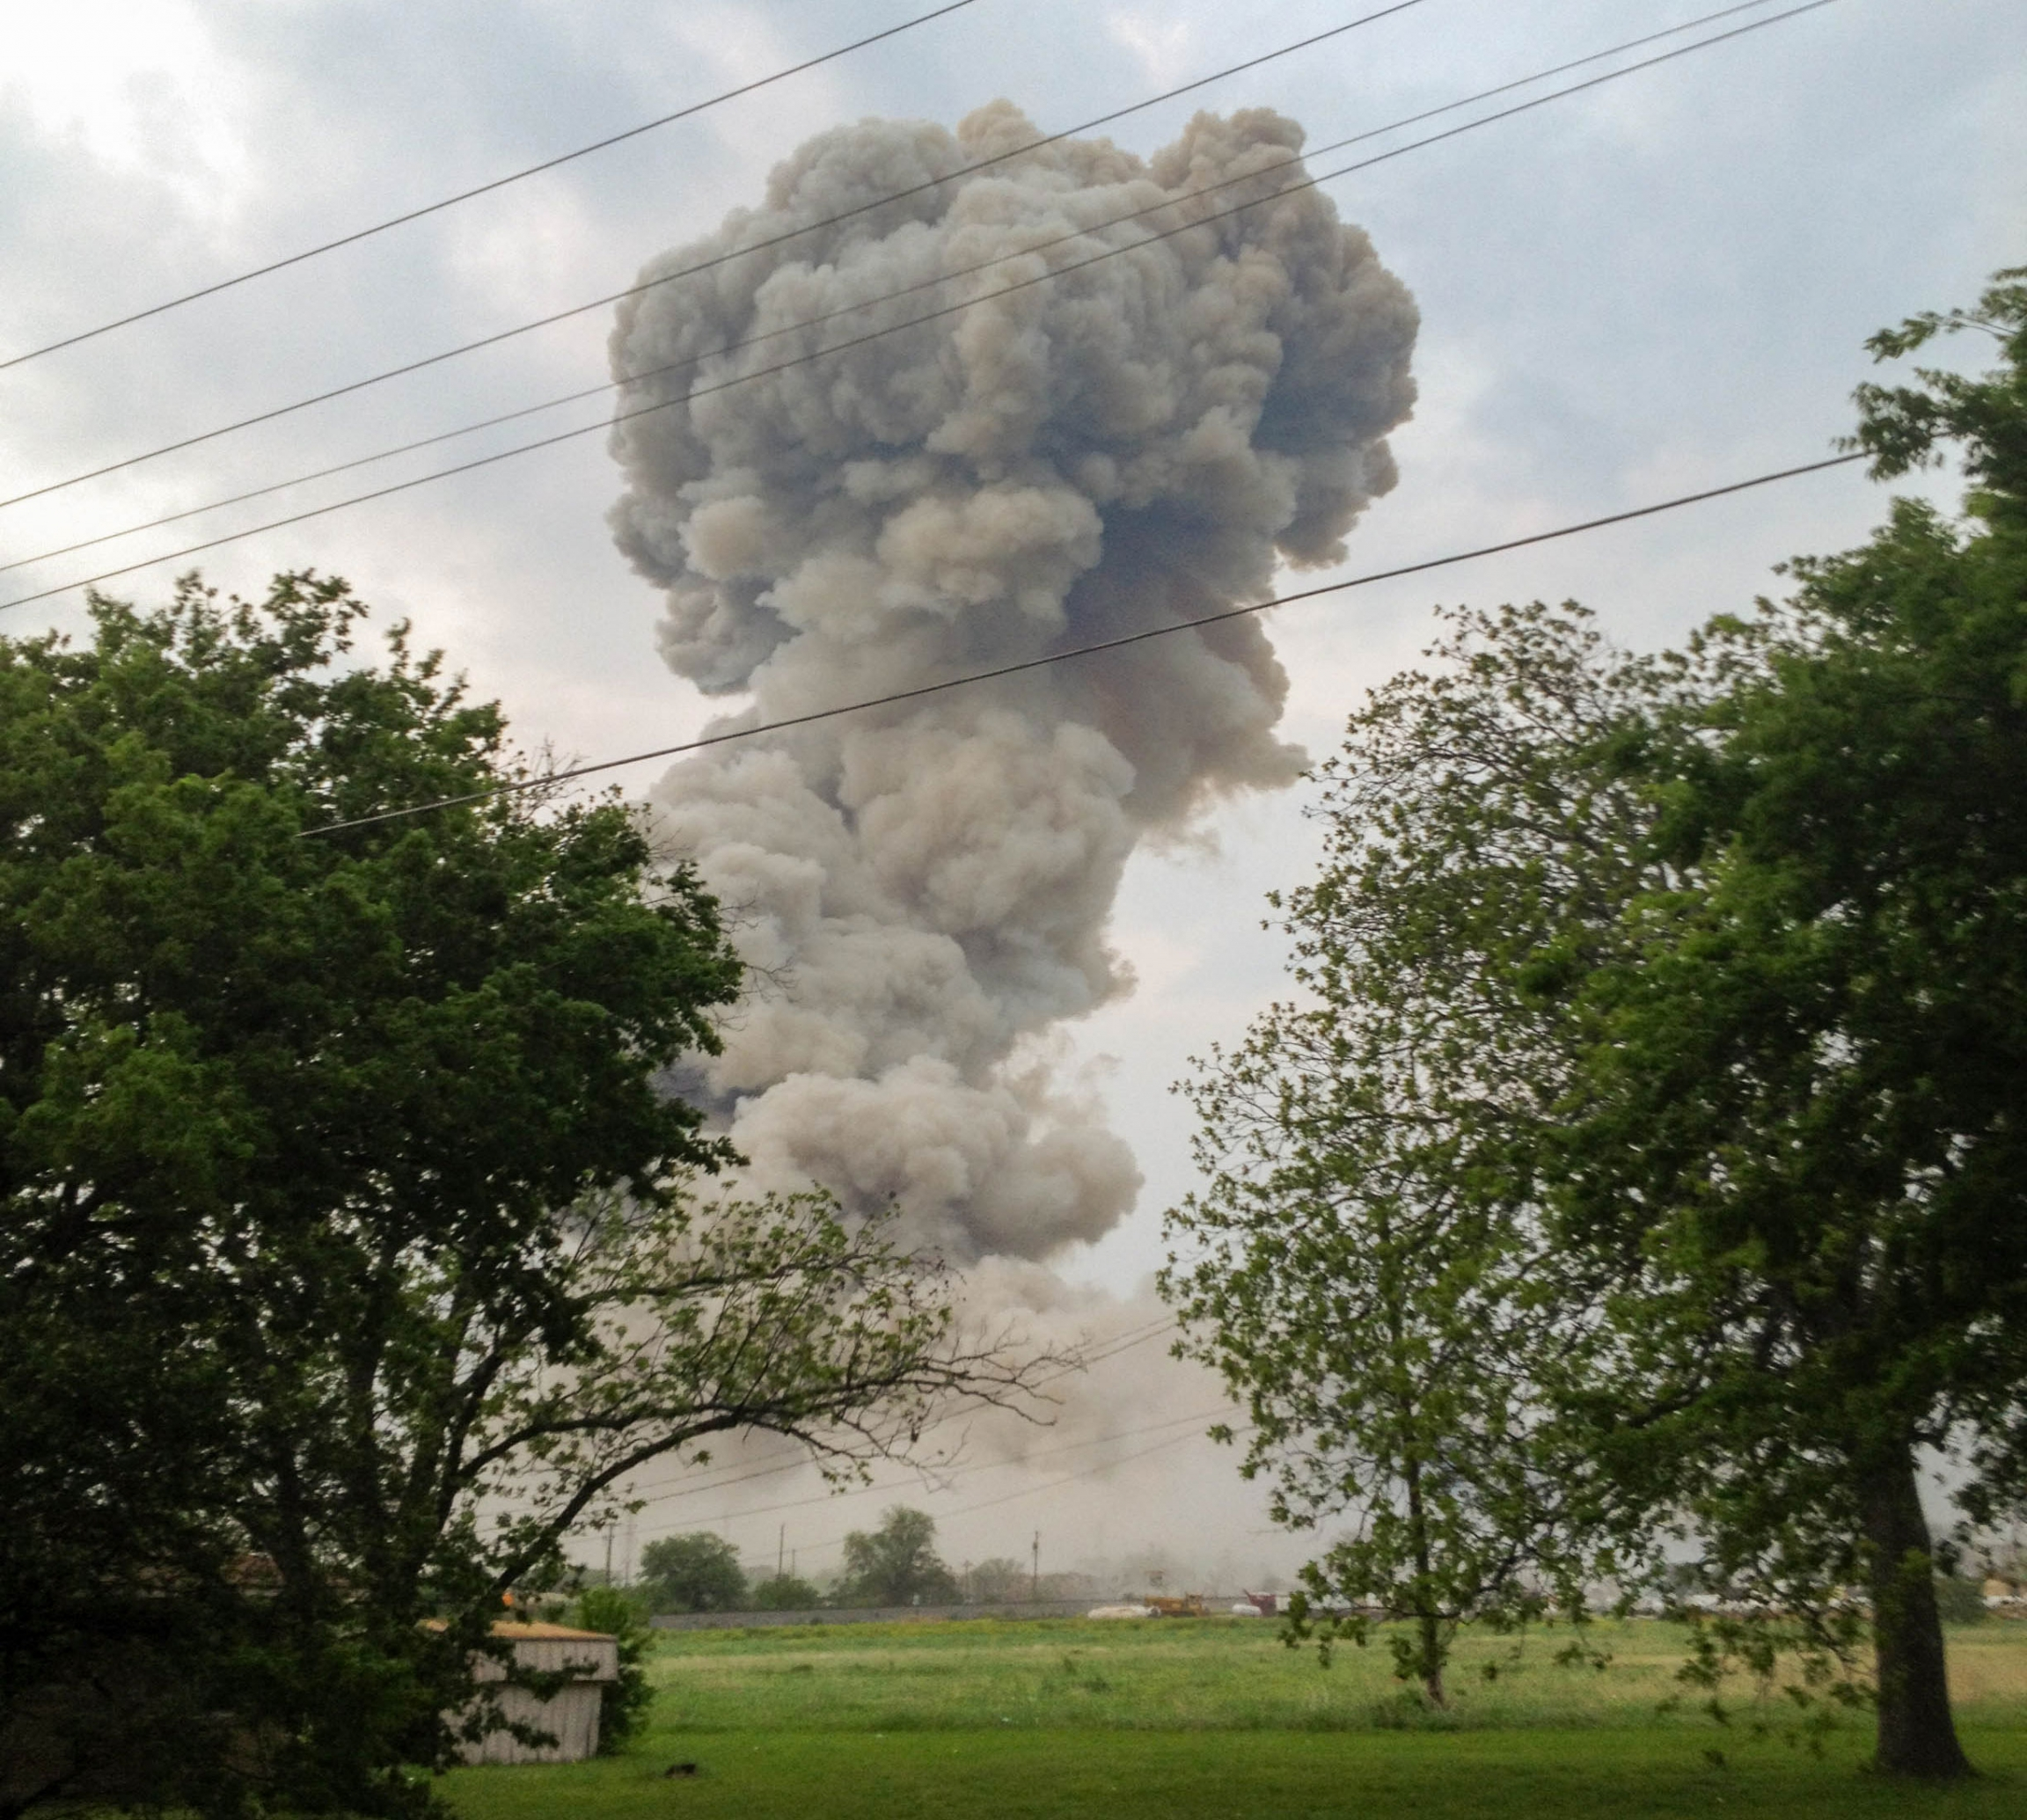 A plume of smoke is seen in the distance following an explosion.